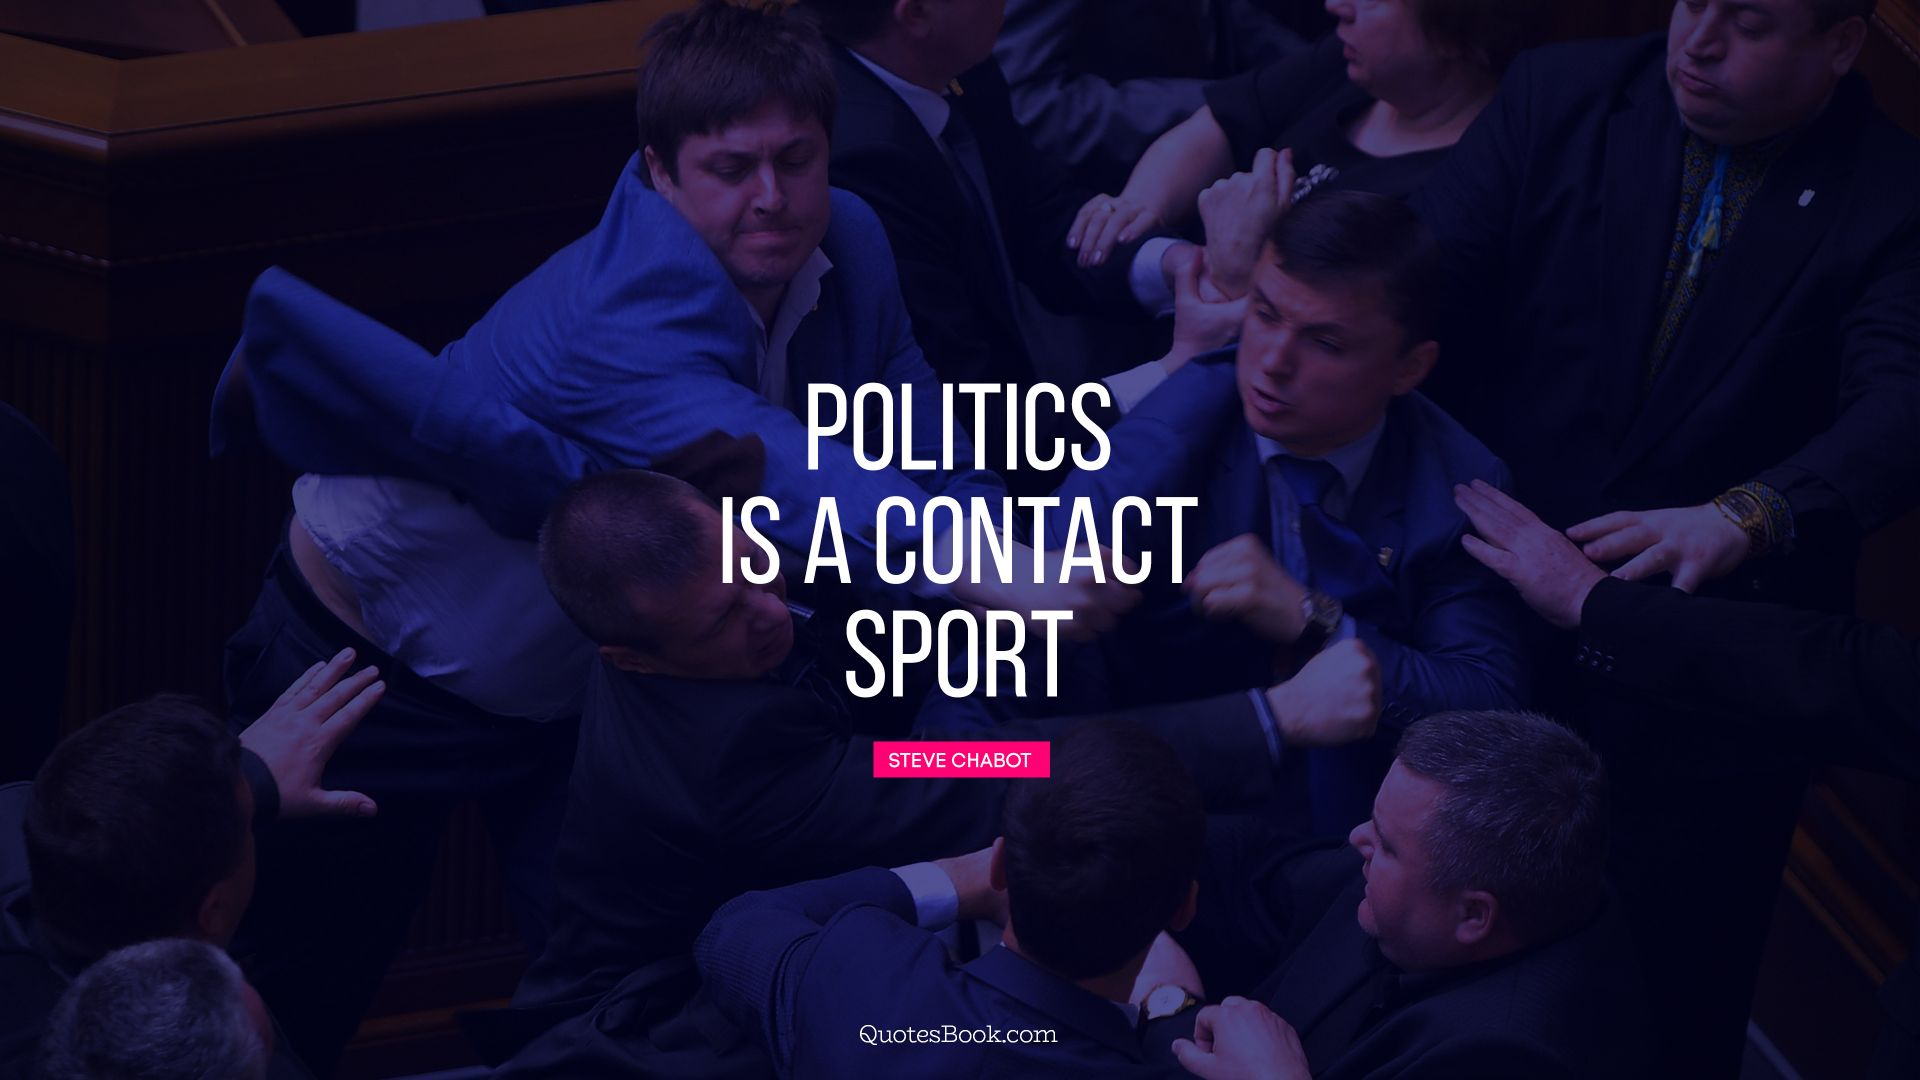 Politics is a contact sport. - Quote by Steve Chabot